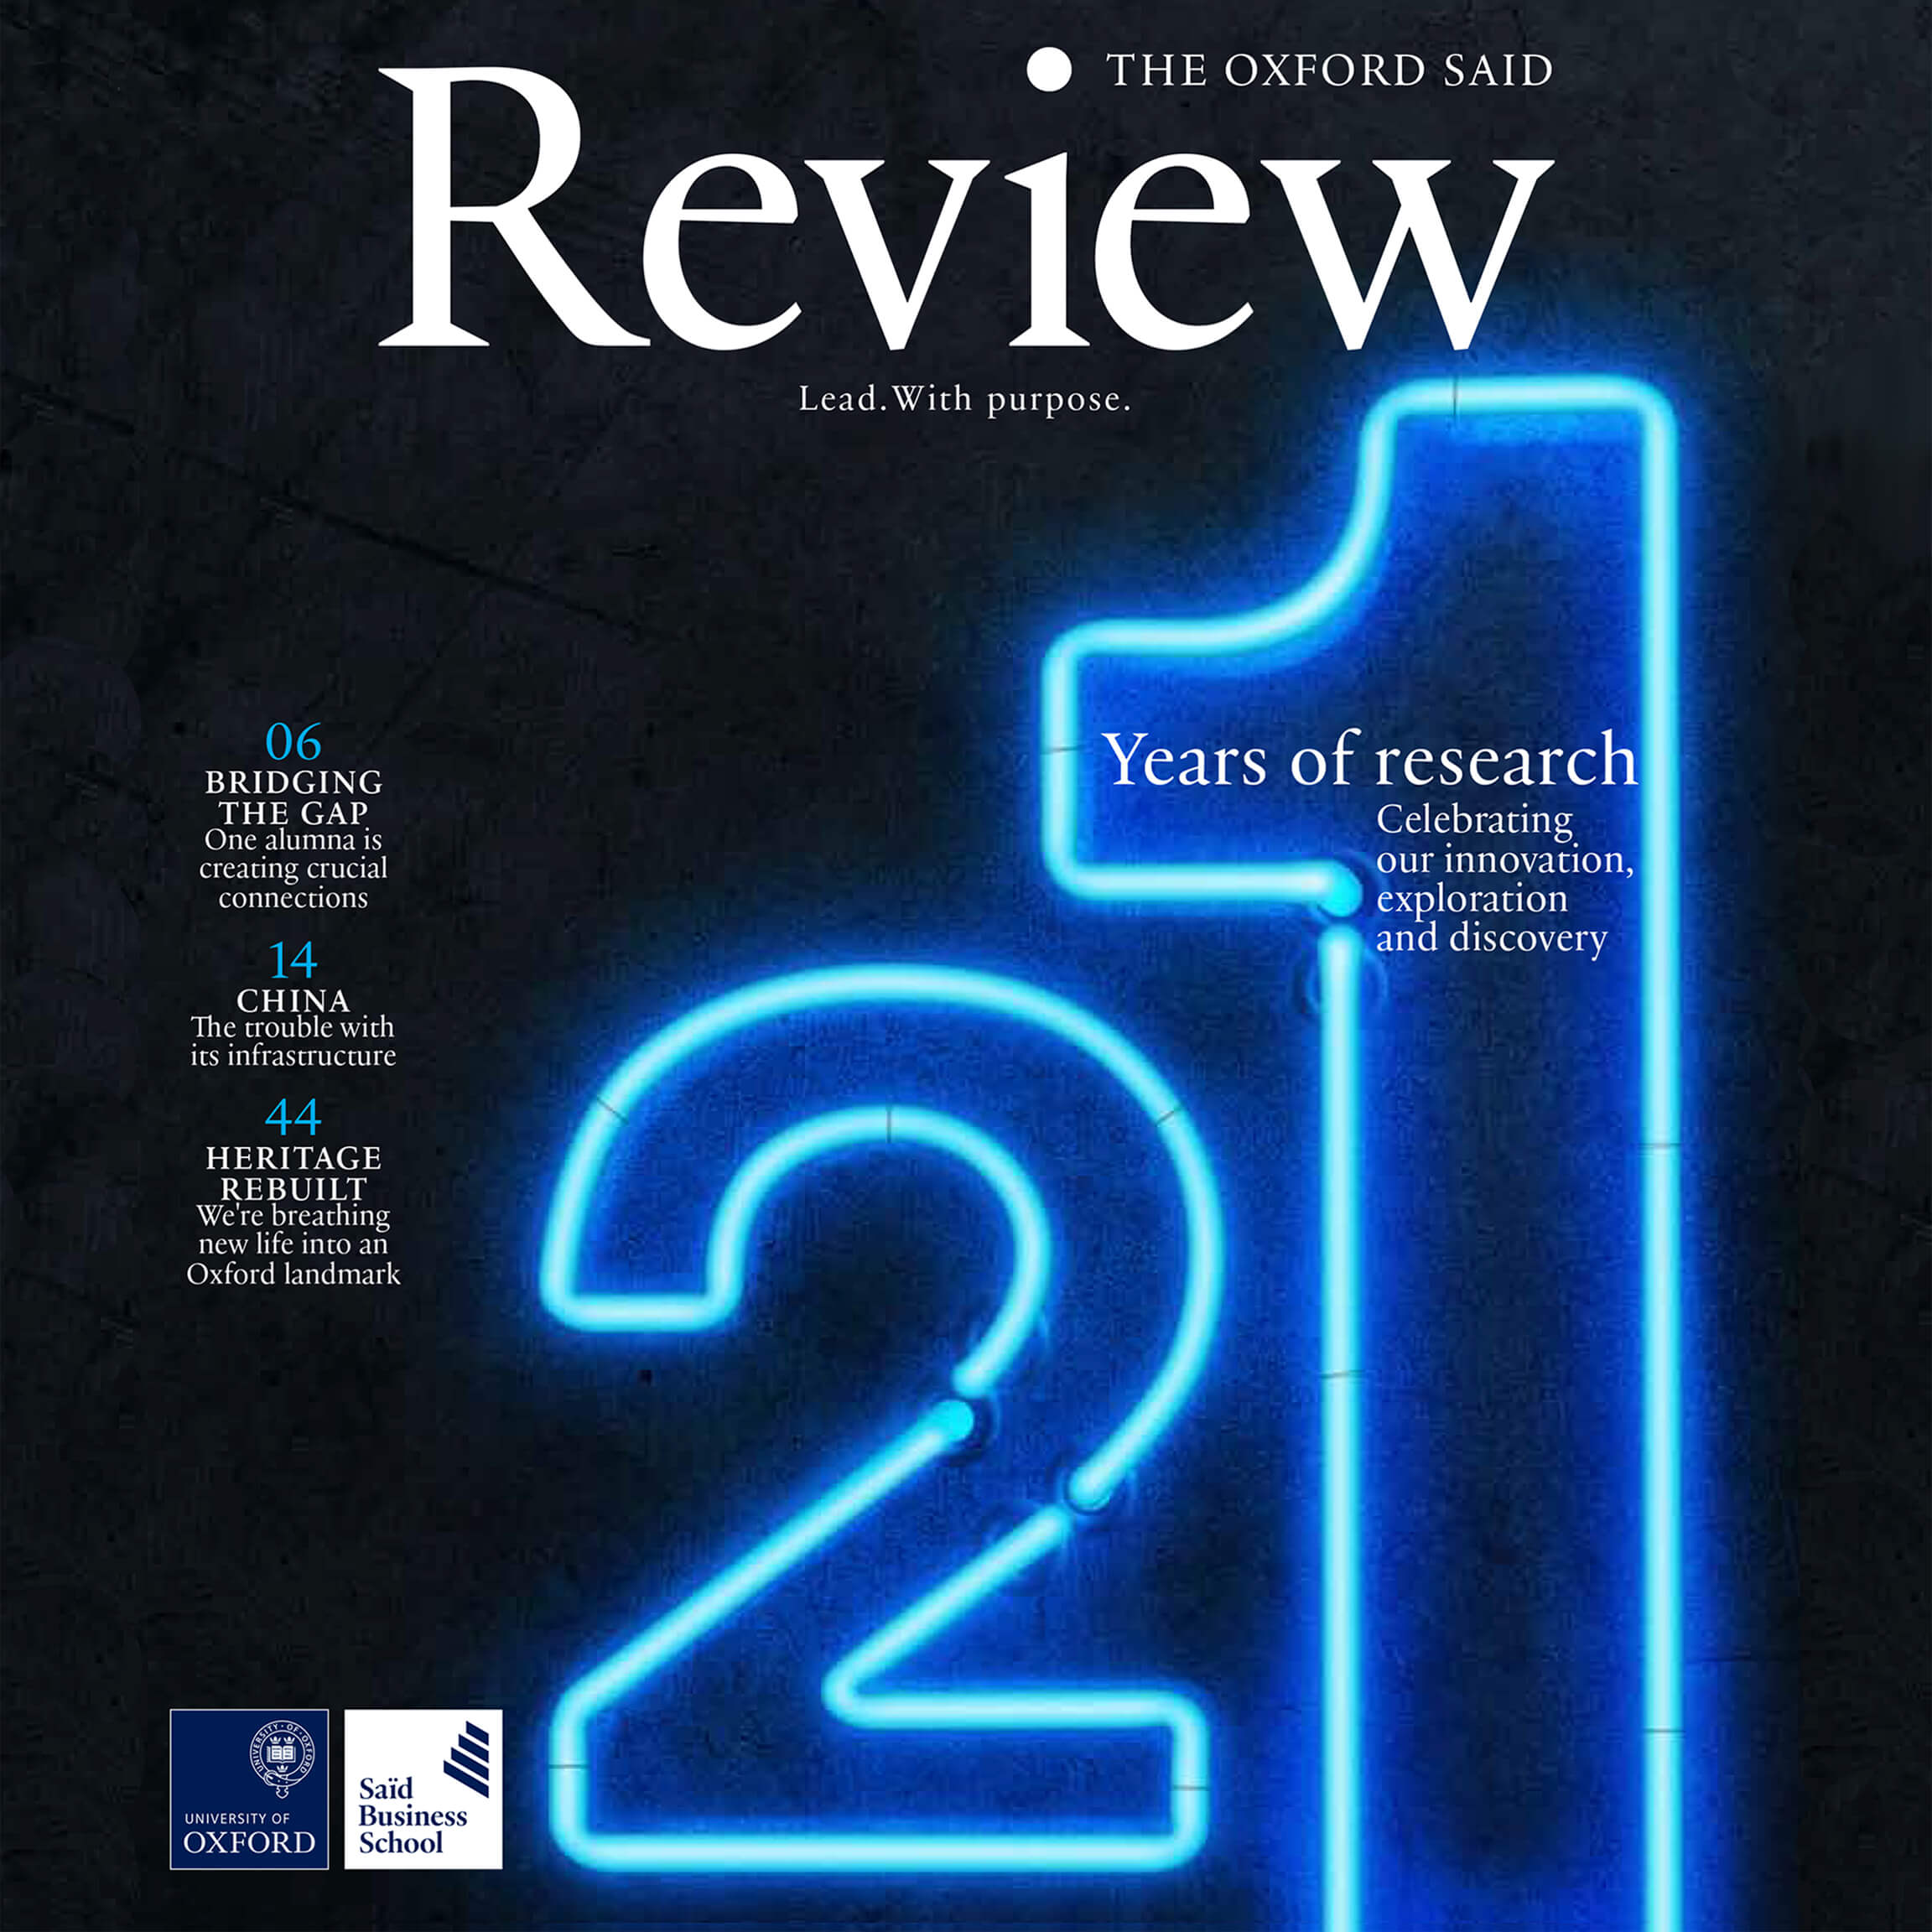 Annual Review cover 2017